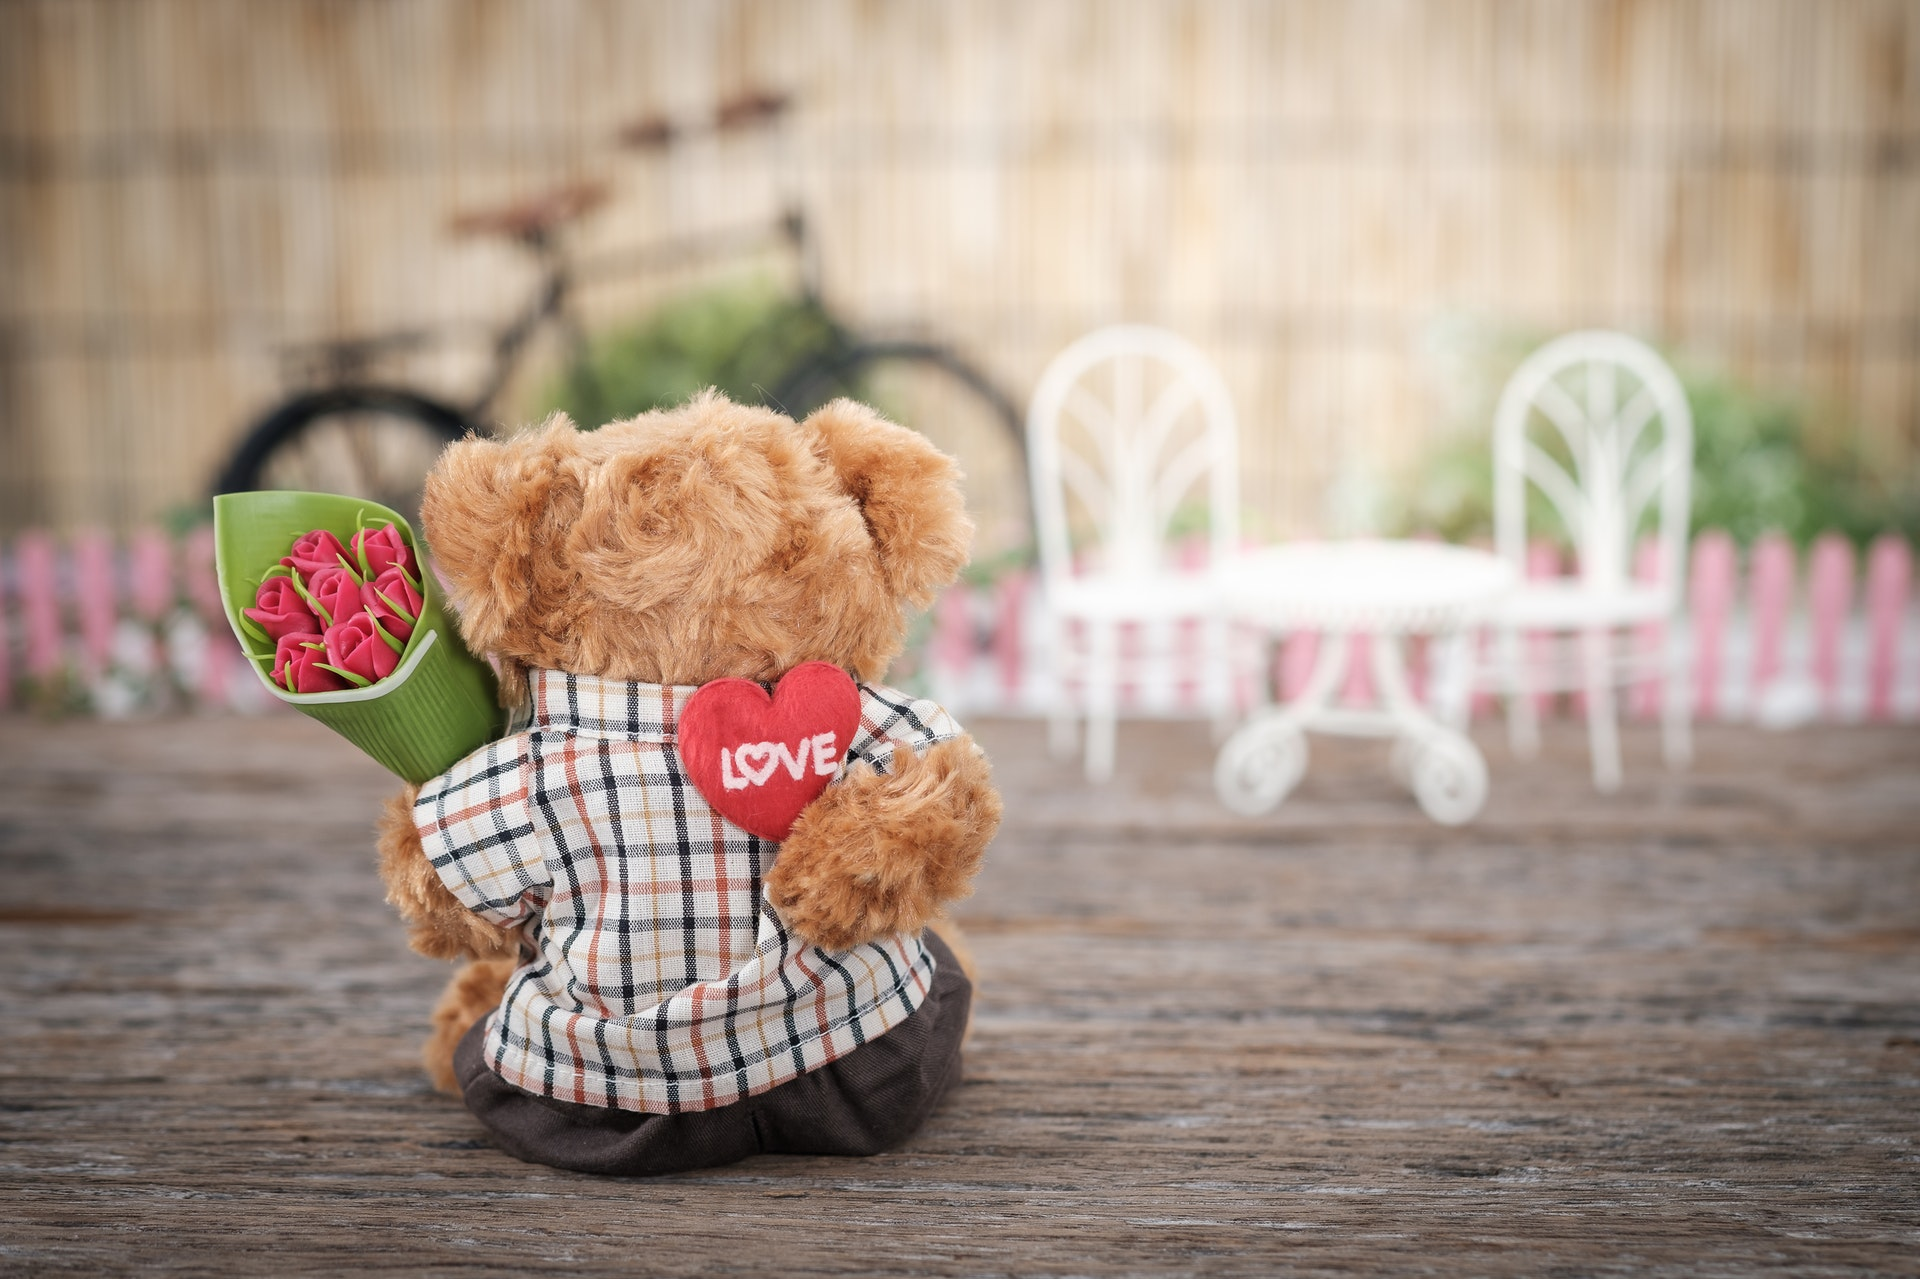 Top Teddy Day Images 2020, Teddy day picture & wallpaper